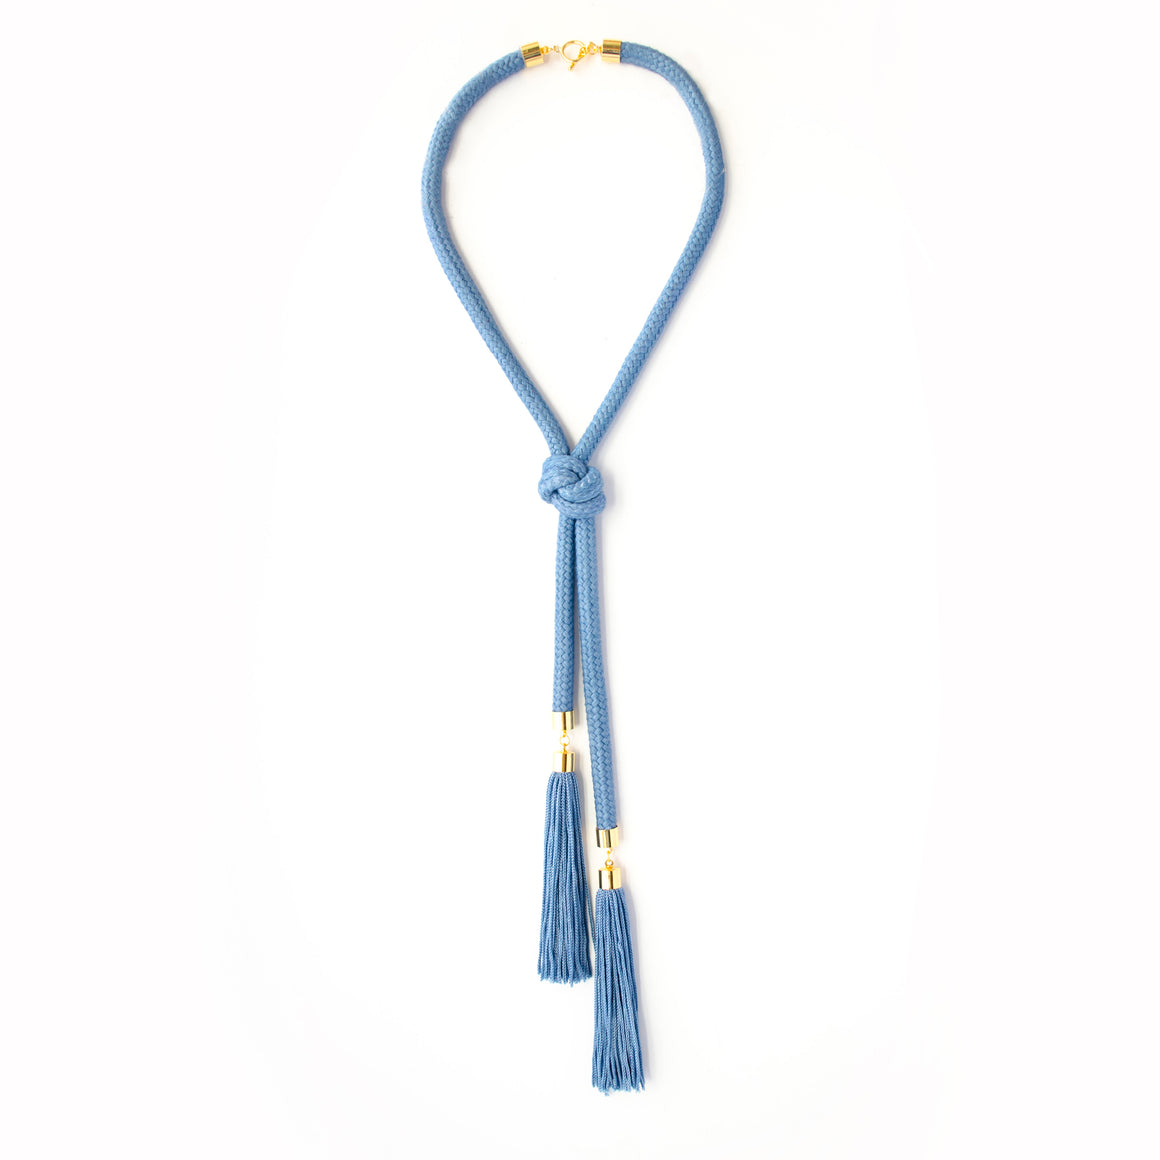 Knoted Cord Tassel Necklace - Denim Blue